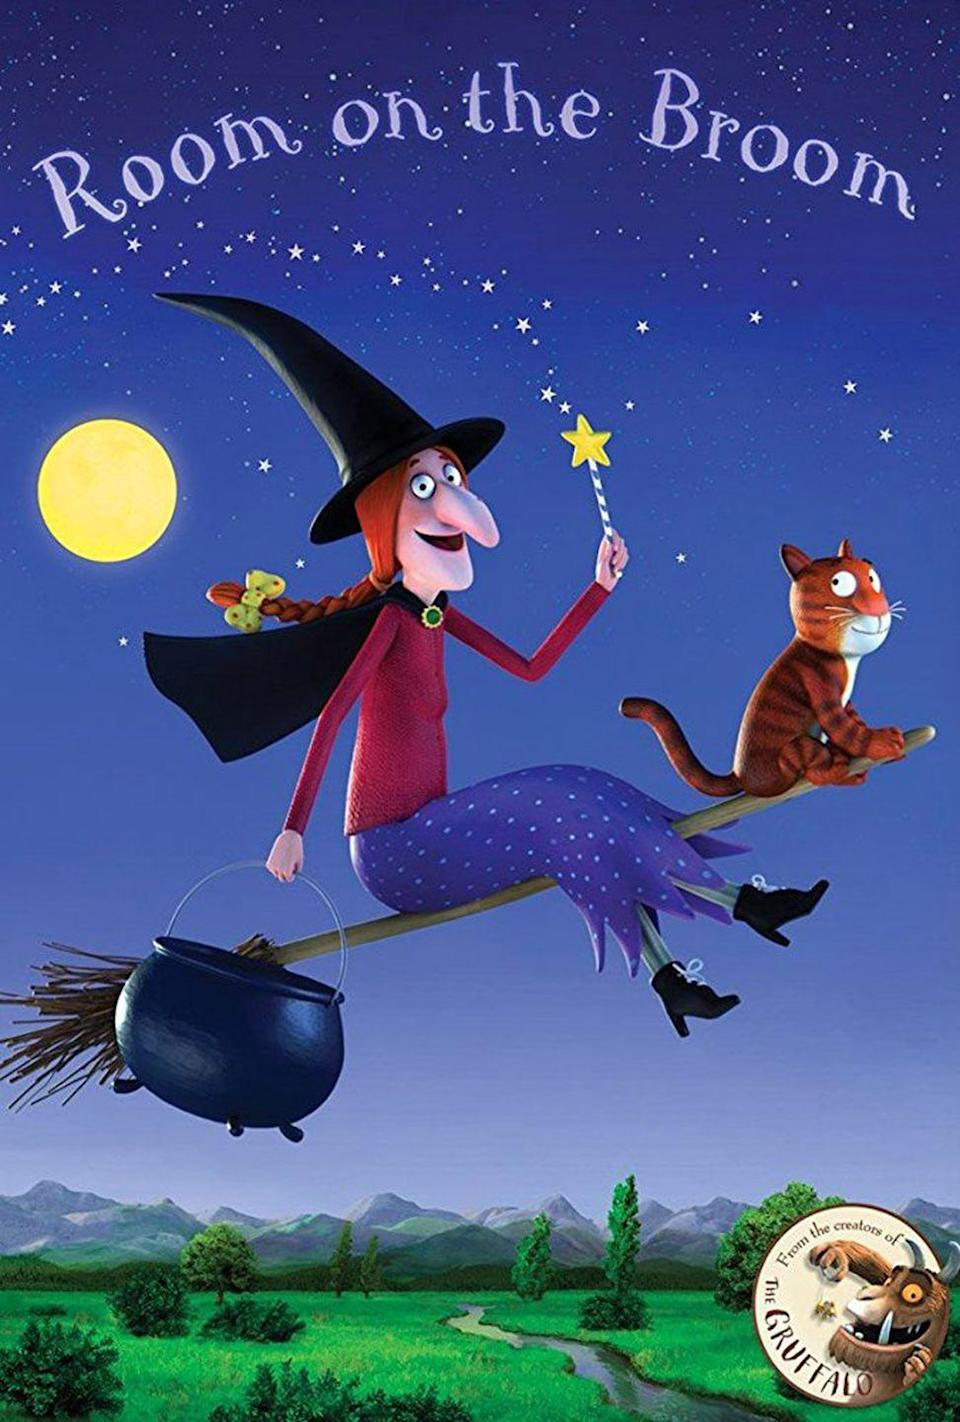 "<p>This friendly witch is working hard to rebuild her broom so all her furry friends can fly together.</p><p><a class=""link rapid-noclick-resp"" href=""https://www.netflix.com/watch/80005738"" rel=""nofollow noopener"" target=""_blank"" data-ylk=""slk:WATCH NOW"">WATCH NOW</a></p>"